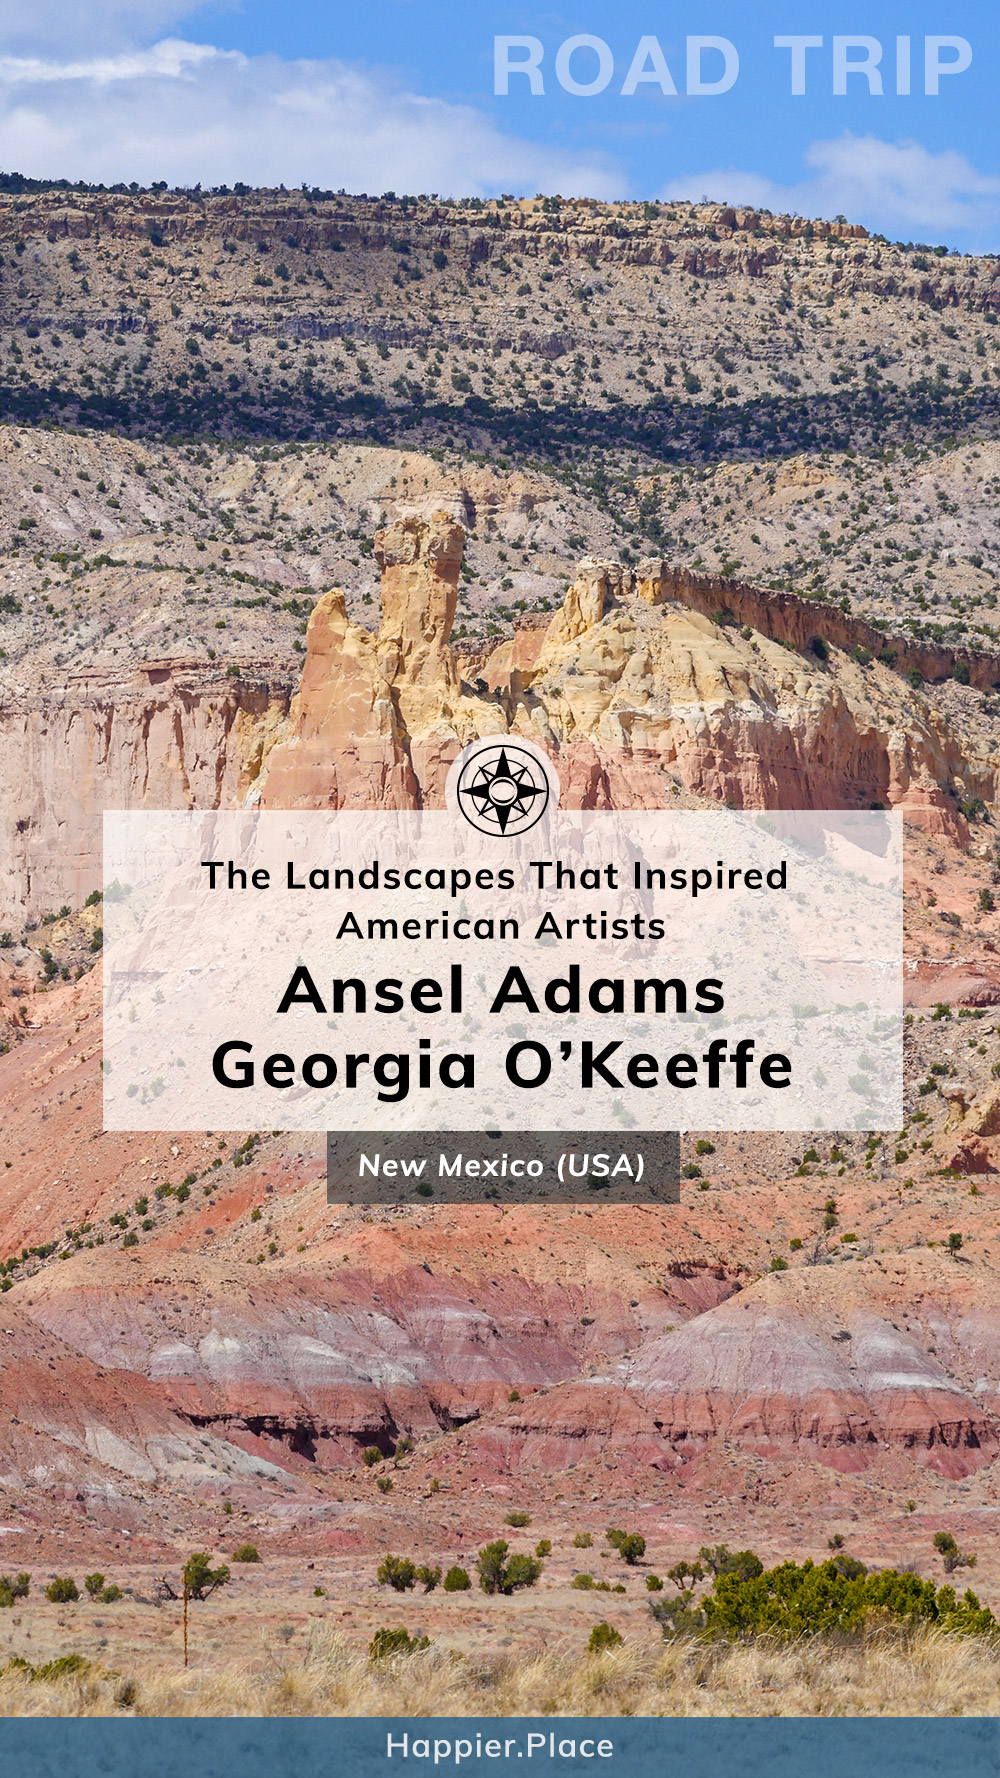 Road Trip through the landscapes that inspired American Artists Ansel Adams and Georgia O'Keeffe in New Mexico, USA, Chimney Rock, Ghost Ranch, Happier Place